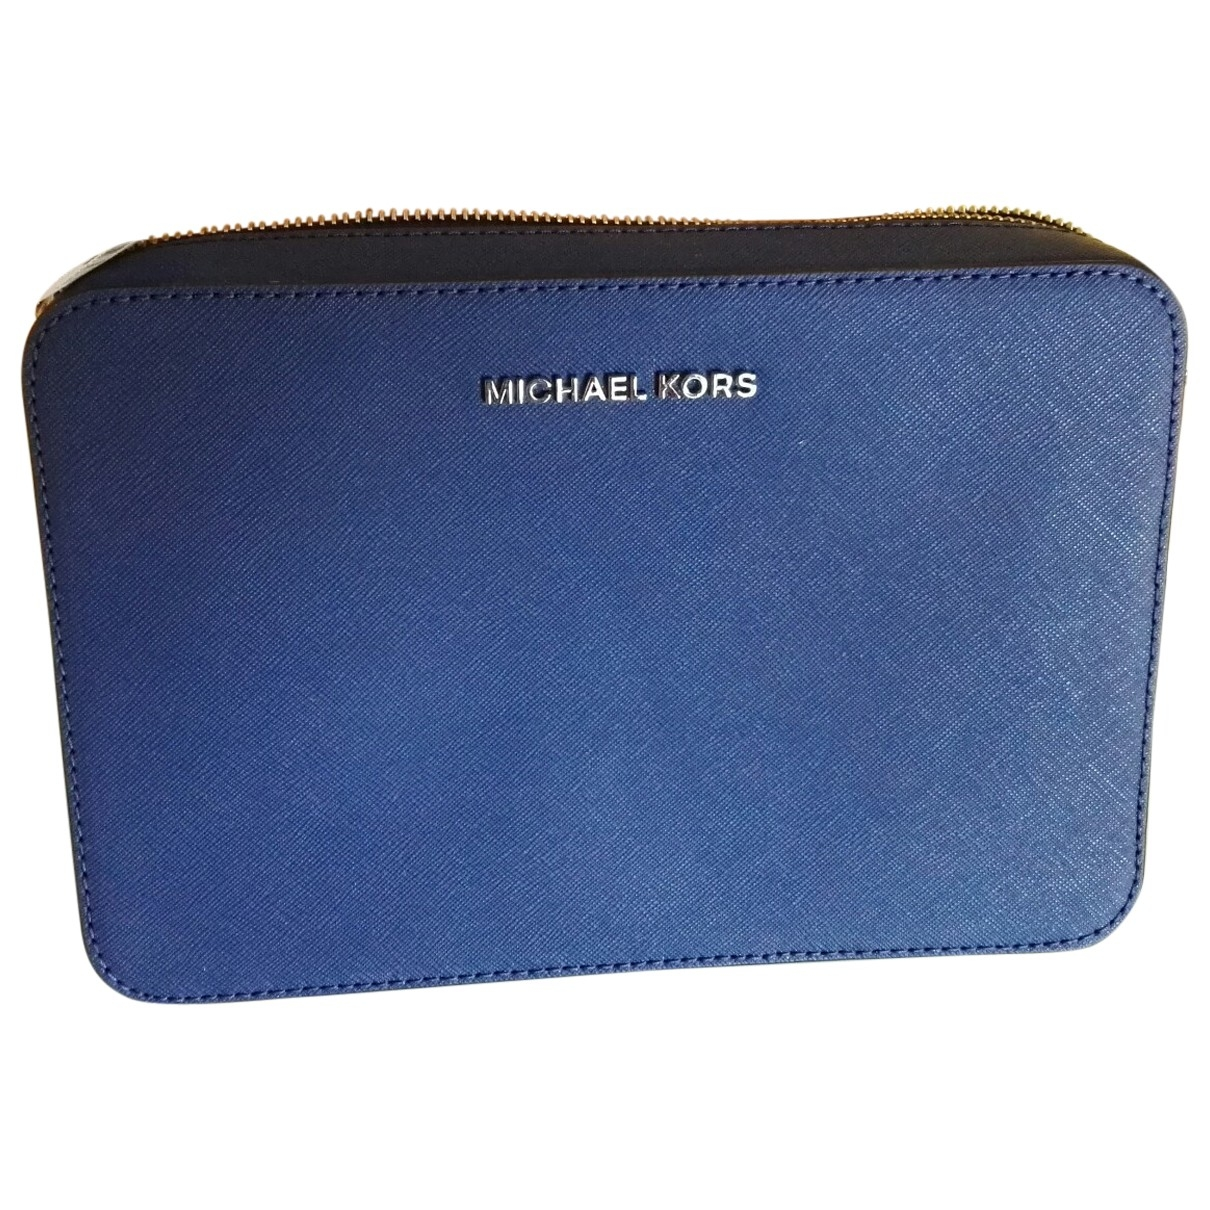 Michael Kors \N Blue Leather Clutch bag for Women \N